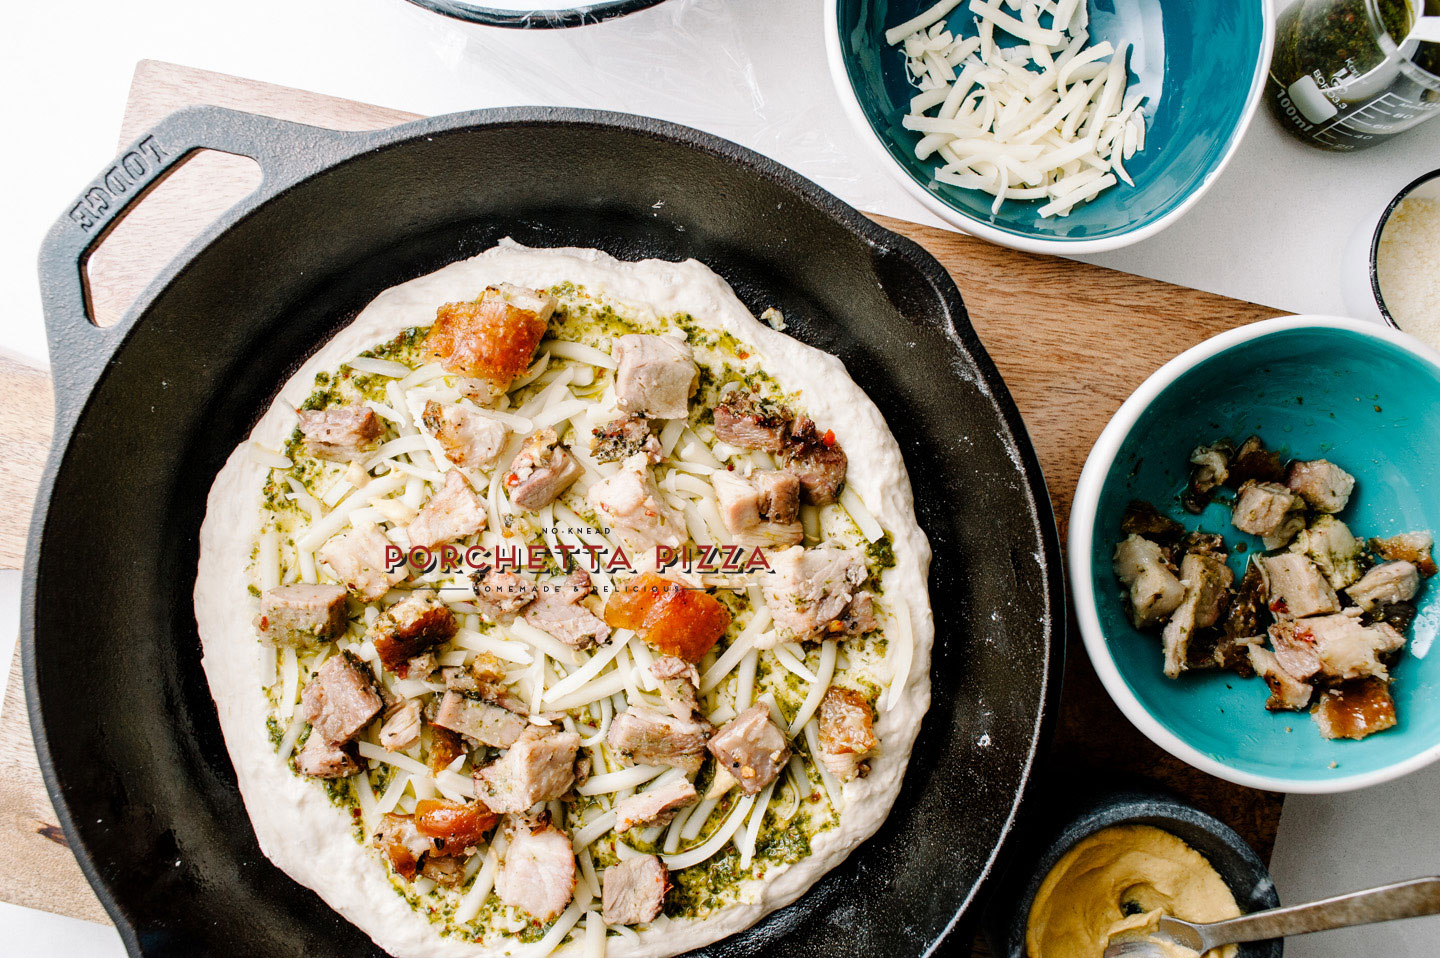 porchetta pizza recipe - www.iamafoodblog.com